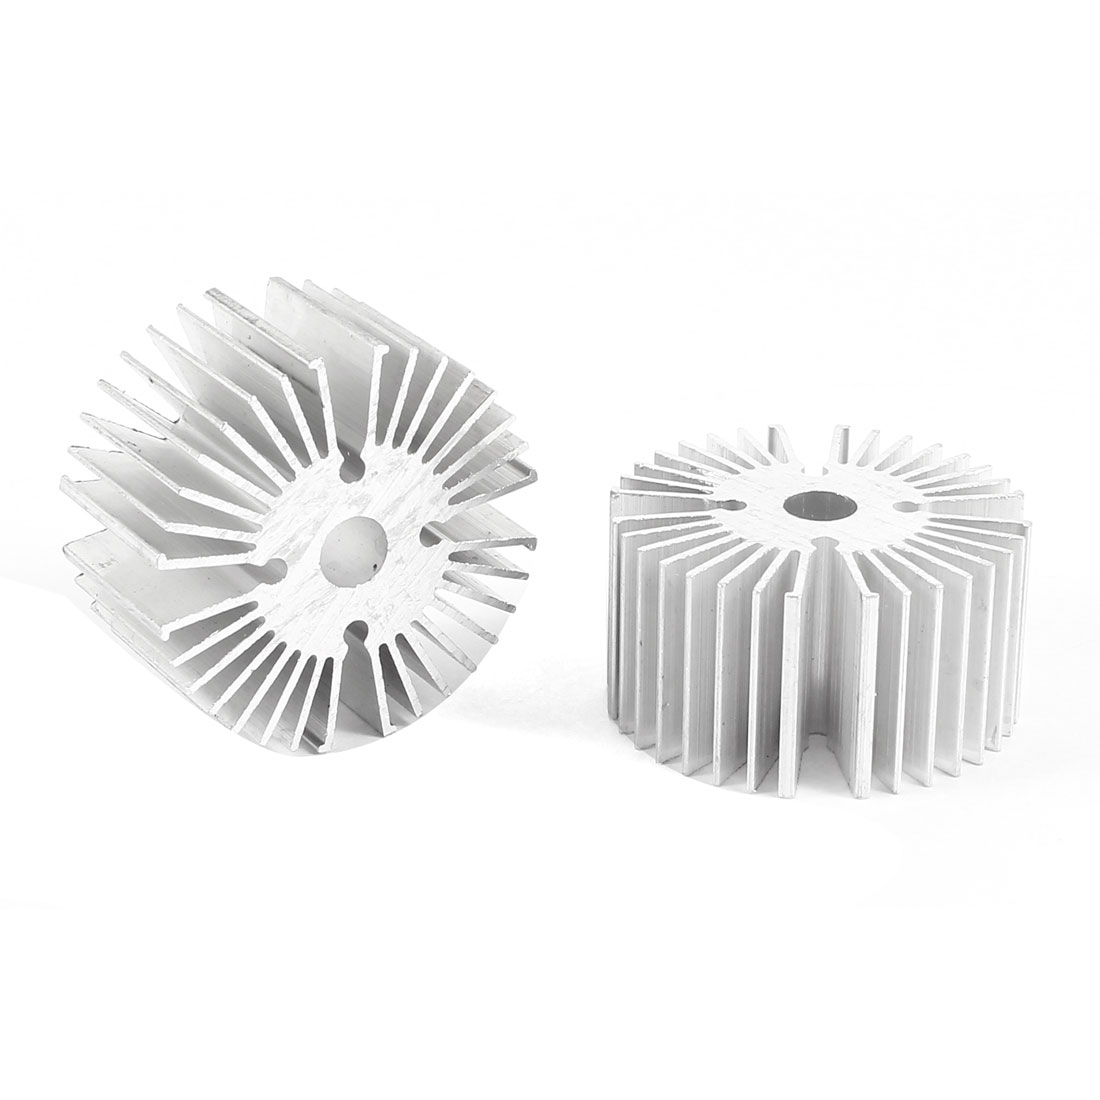 2 Pcs Round Shaped 39mm OD 6.5mm ID 20mm Height LED Light Heat Sinks Cooling Fin